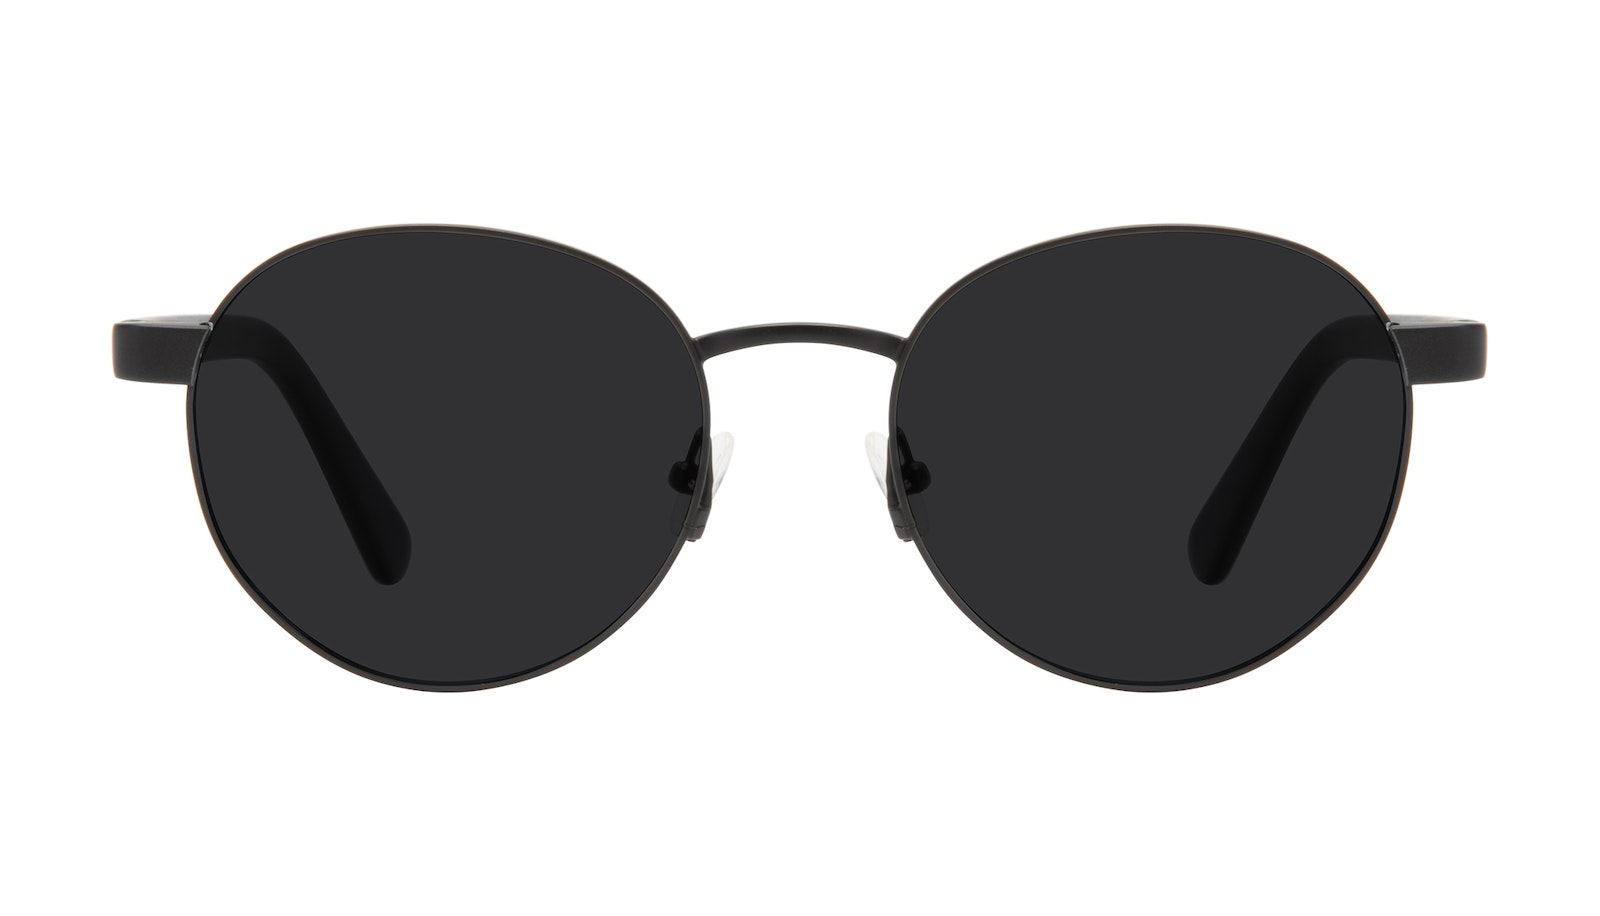 Affordable Fashion Glasses Round Sunglasses Men Alter Black